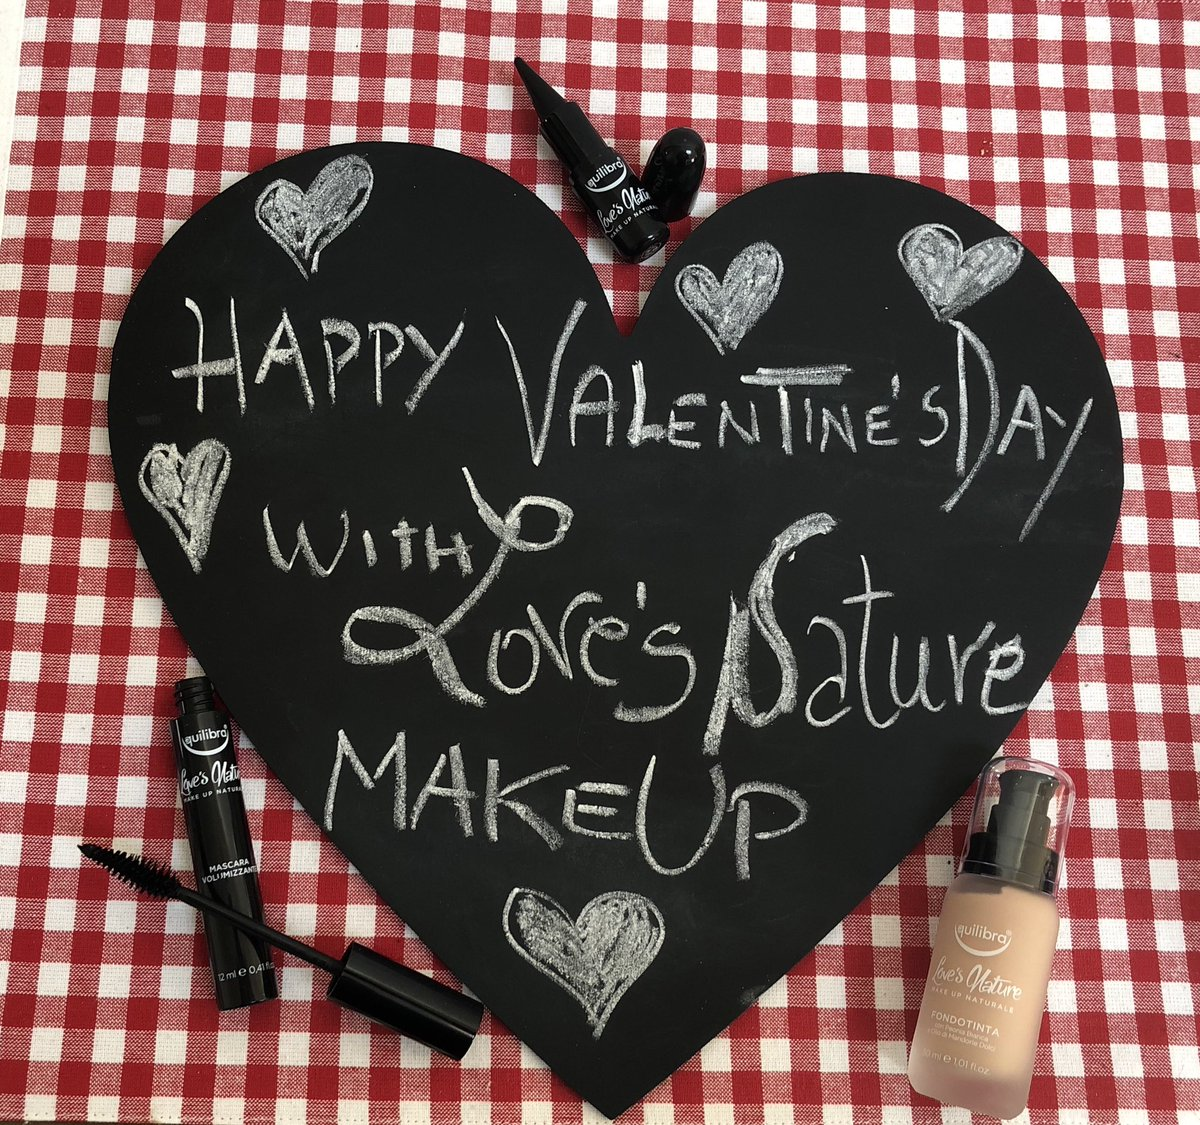 Happy Valentine's Day 2019 by Love's Nature! 💄❤️  #makeup #naturalmakeup #beauty #naturalbeauty #romanticparty #london #mua #makeupartist #lovesnatureuk #equilibrapeople #makeupequilibra #makeuplovers #valentinesday #love #happyvalentinesday #valentinesday2019